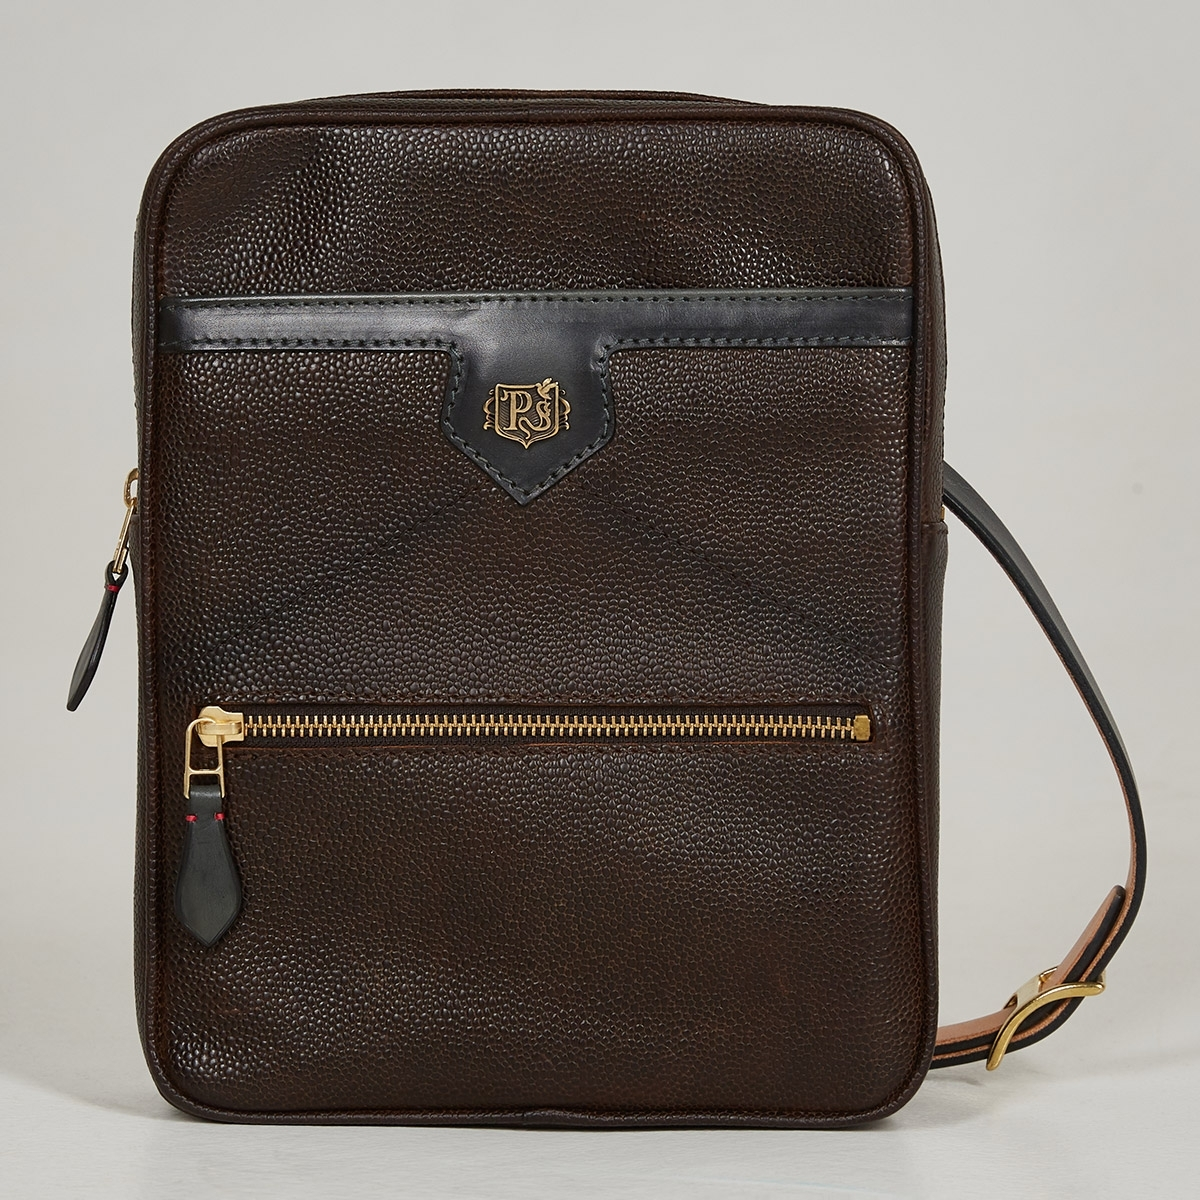 Crossbody bag MEZZO dark agave & grain dark brown